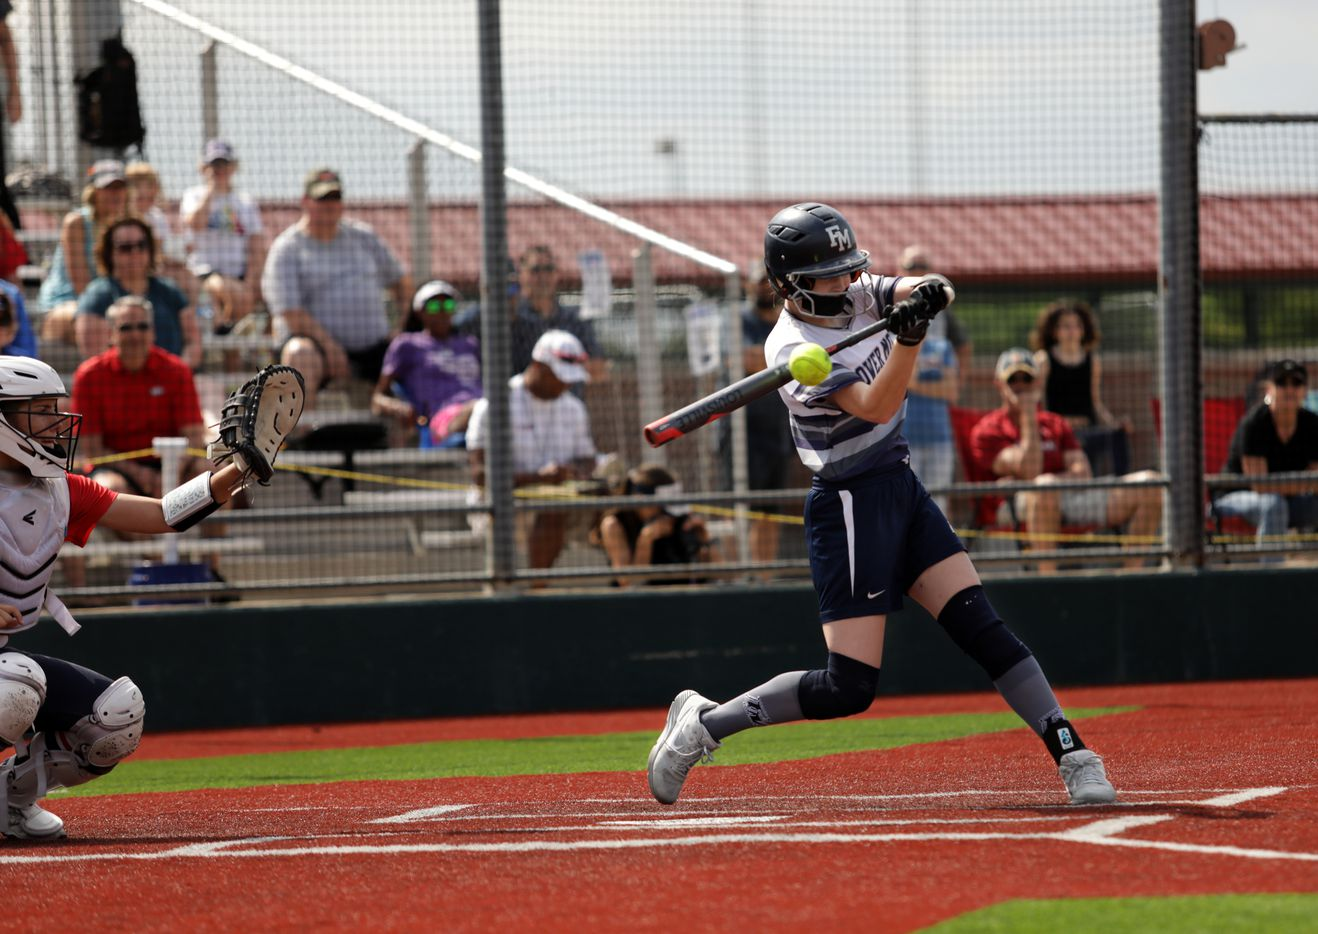 Flower Mound High School player #8, Carsyn Lee, hits the ball during a softball game against Allen High School at Allen High School in Allen, TX, on May 15, 2021. (Jason Janik/Special Contributor)